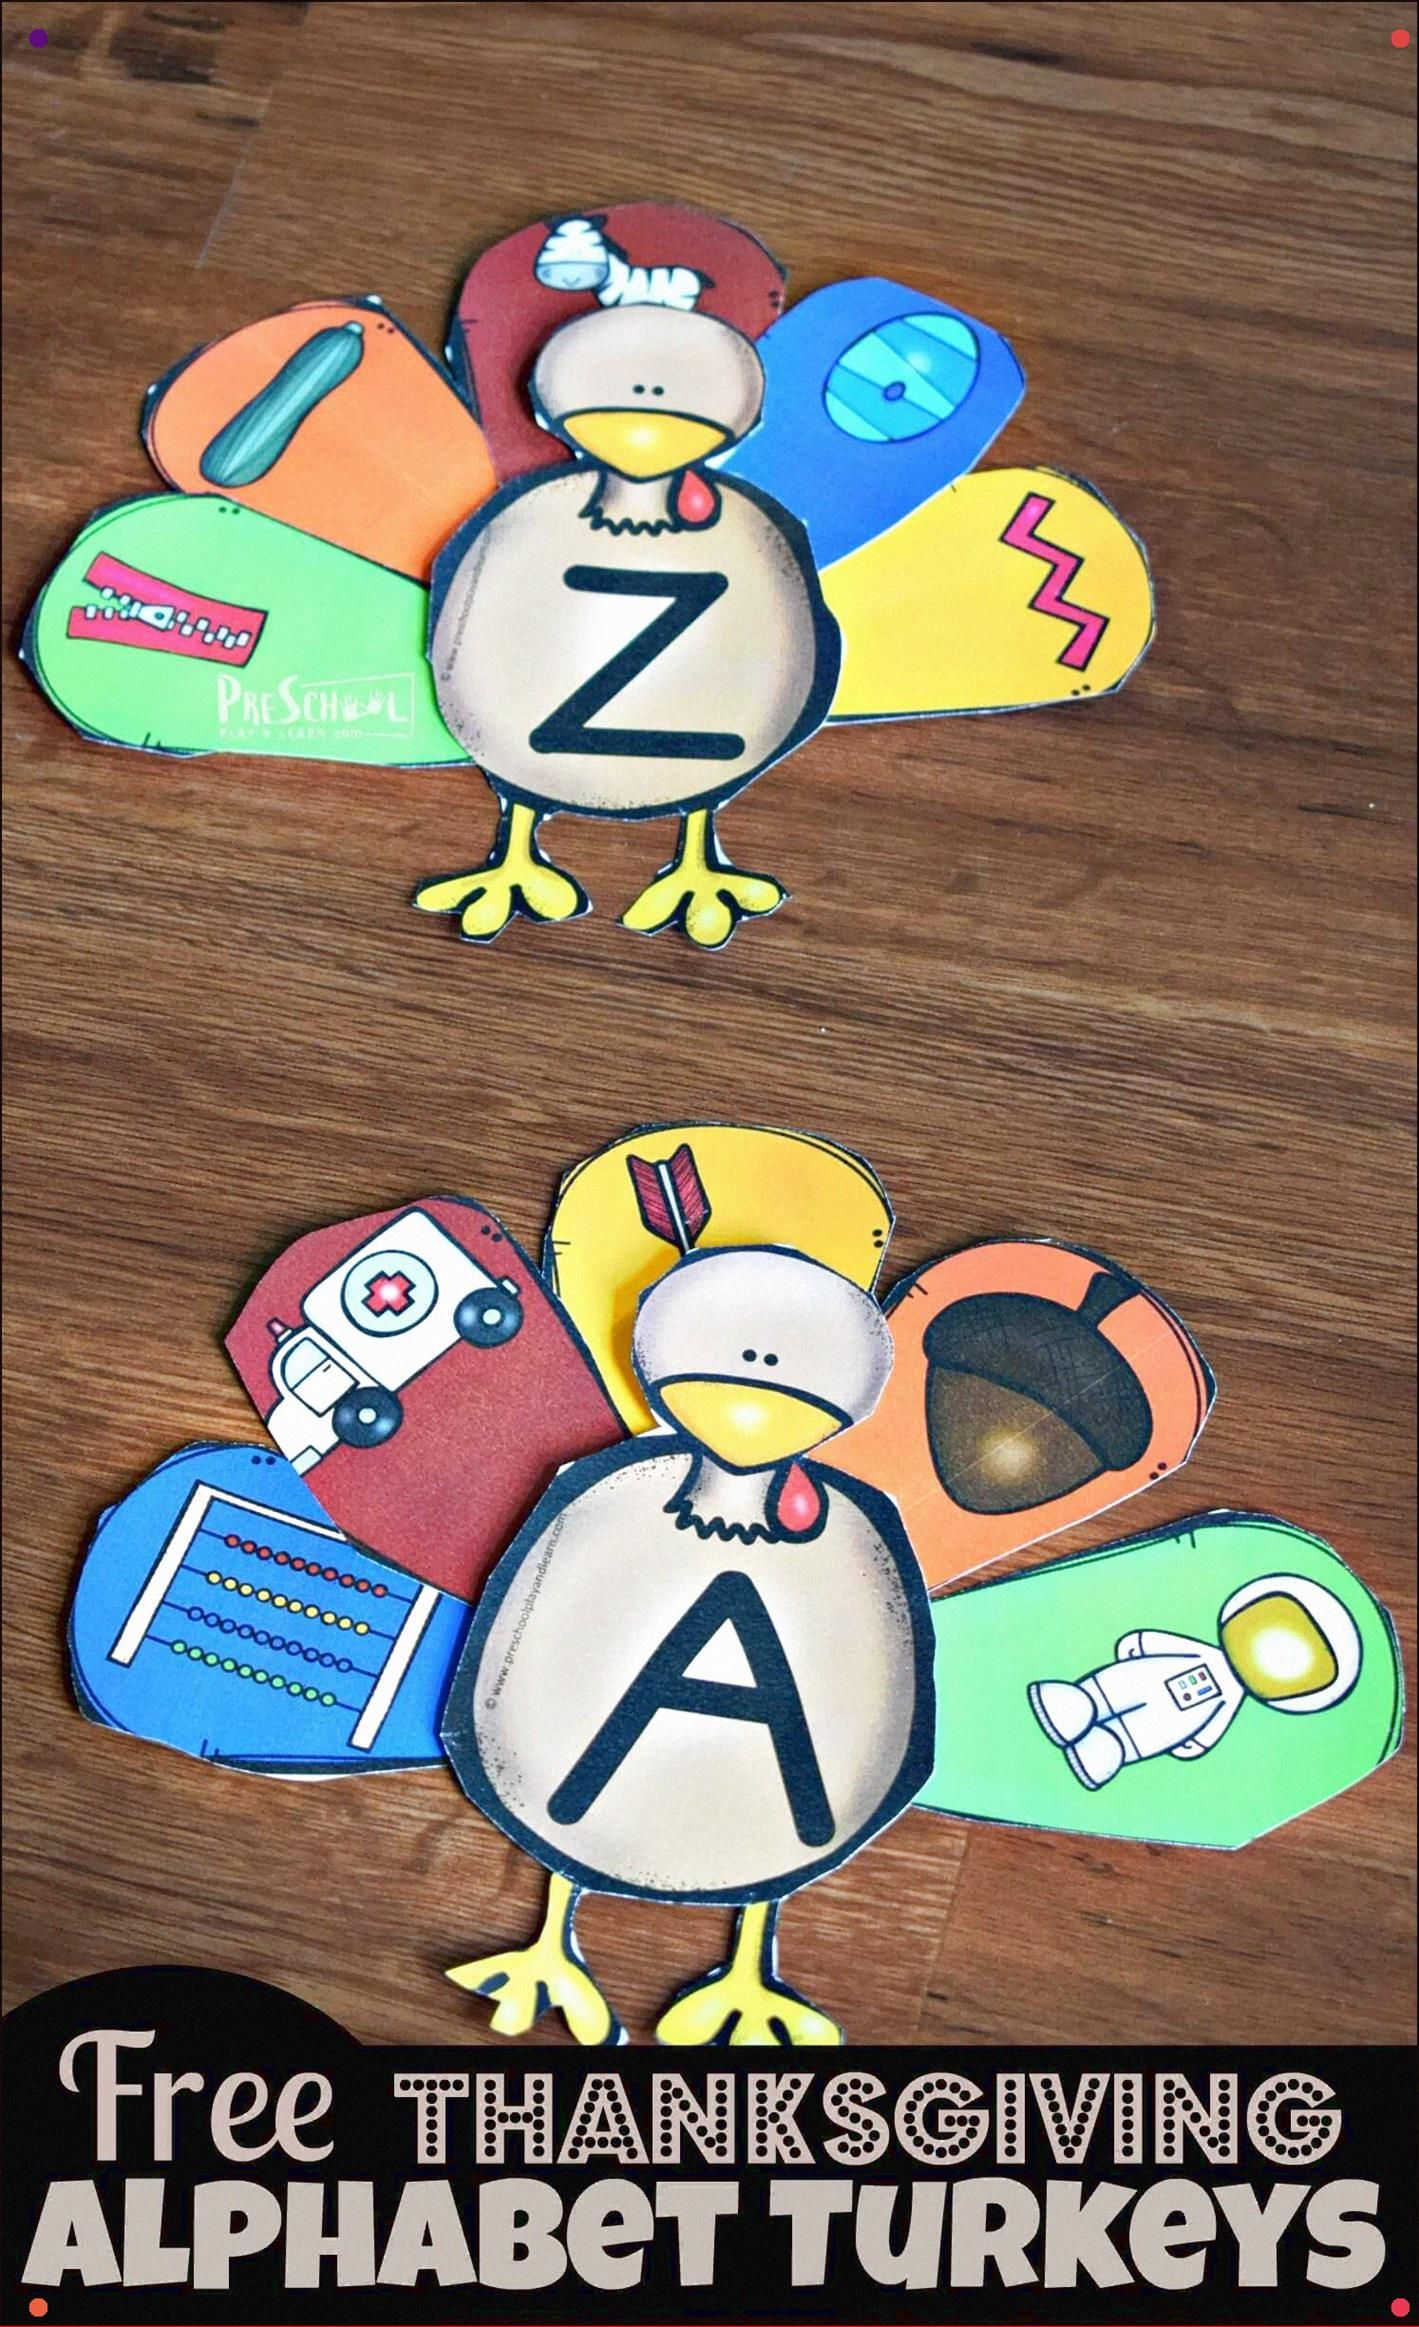 Free Thanksgiving Alphabet Turkeys